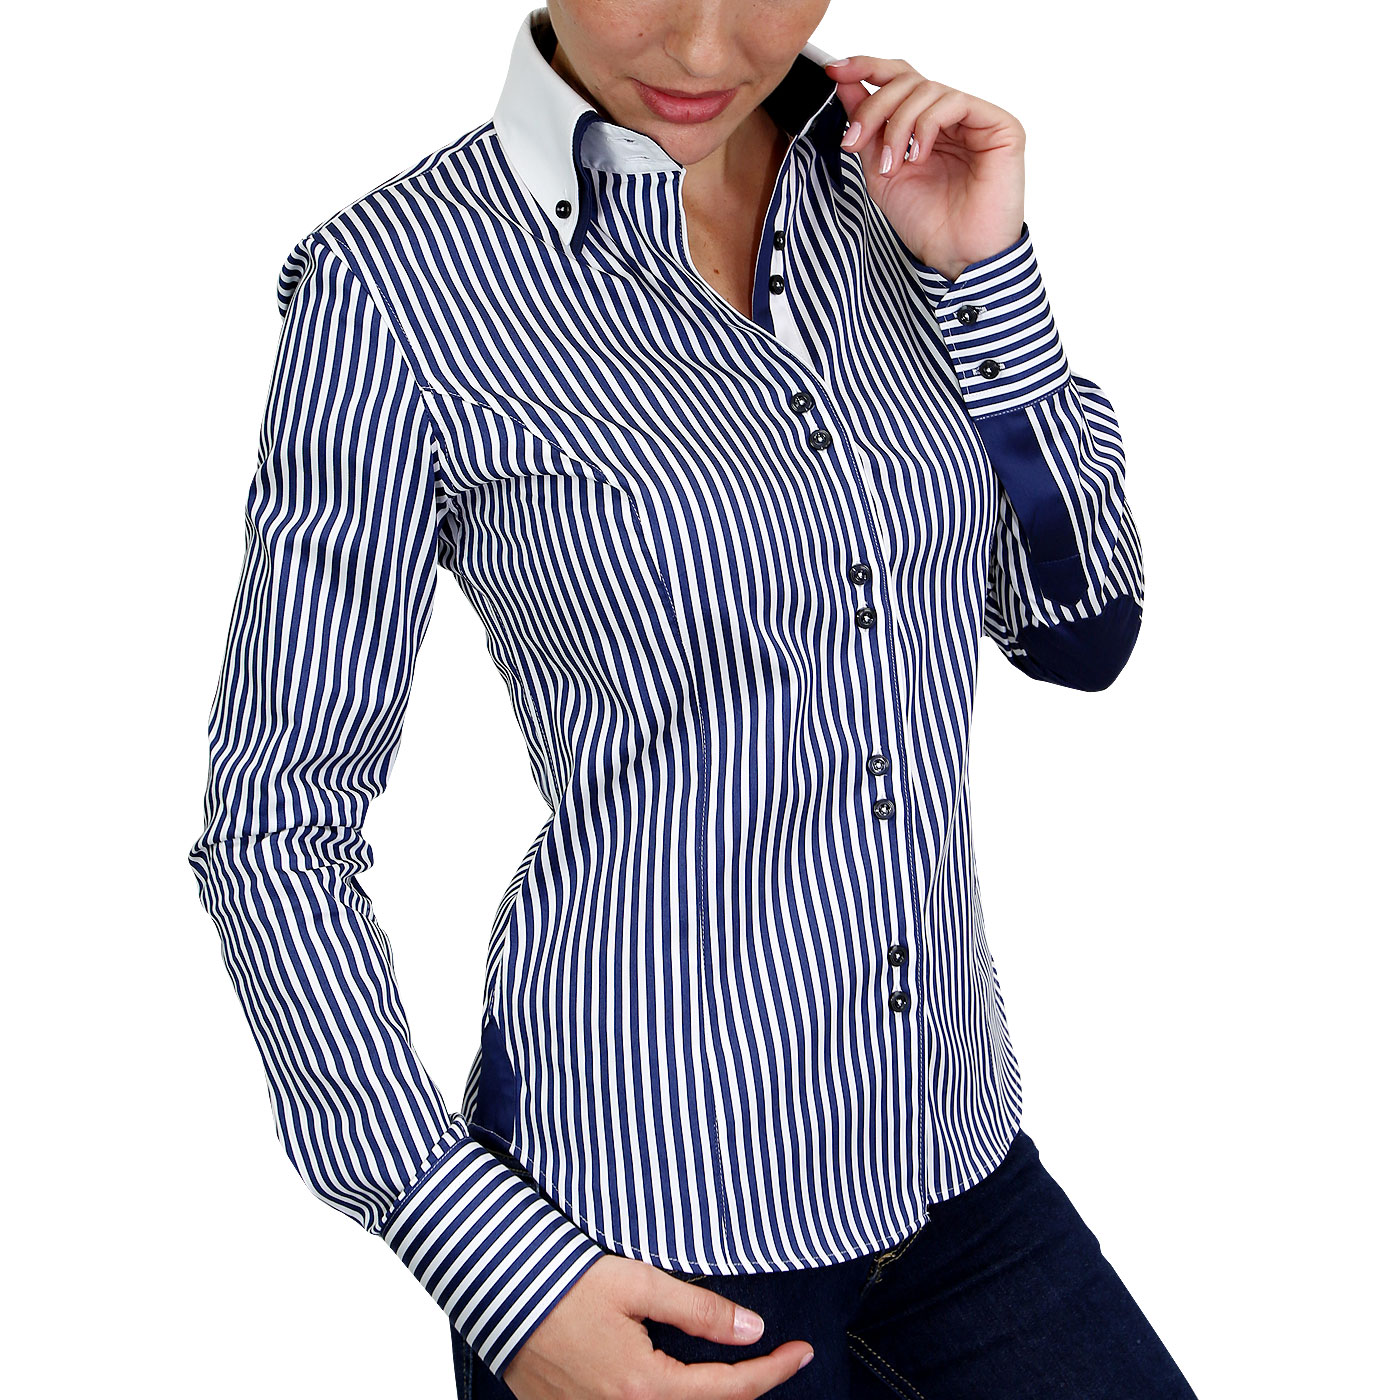 Borsalino shirt for women